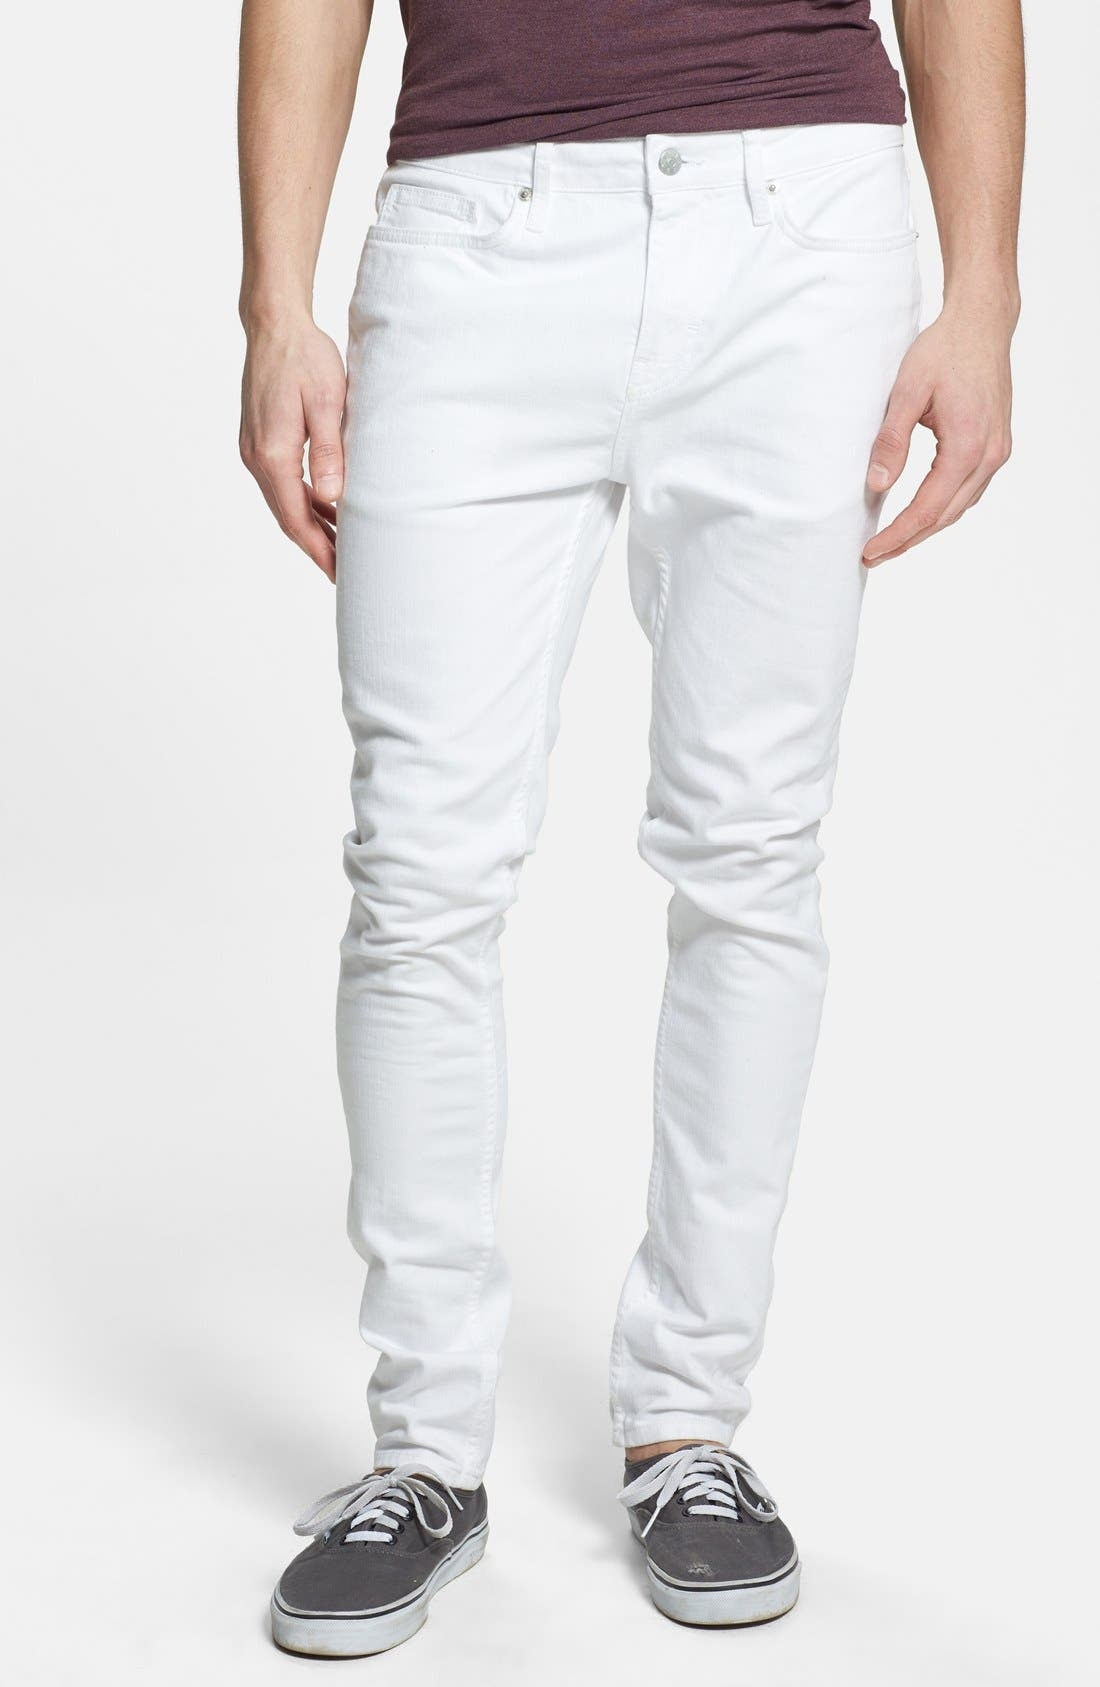 Stretch Skinny Fit Jeans,                             Main thumbnail 1, color,                             100